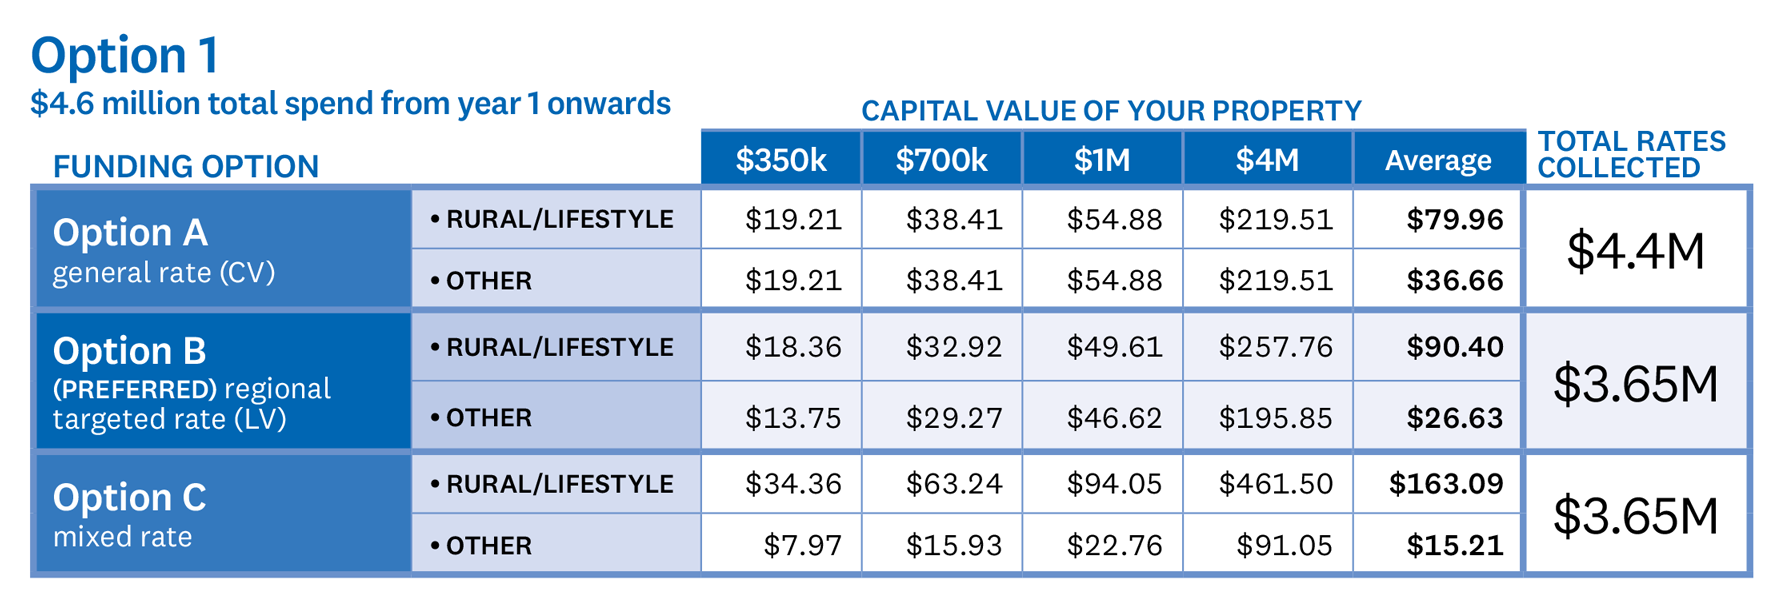 TABLE – Option 1 $4.6 million total spend from year 1 onwards Under funding Option A, where a general rate would be applied to the capital value of a property; a property with a capital value of $350,000 would pay $19.21, a capital value of $700,000 would pay $38.41, a capital value of $1,000,000 would pay $54.88, and a capital value of $4,000,000 would pay $219.51. The average rural or lifestyle property would pay $79.96 and the average other property would pay $36.66. The total rates collected under Option A would be $4,400,000. Under our preferred option, funding Option B, where a regional targeted rate would be applied to the land value of a property; a rural or lifestyle property with a capital value of $350,000 would pay $18.36, a capital value of $700,000 would pay $32.92, a capital value of $1,000,000 would pay $49.61, and a capital value of $4,000,000 would pay $257.76. The average rural or lifestyle property would pay $90.40. The other category of property with a capital value of $350,000 would pay $13.75, a capital value of $700,000 would pay $29.27, a capital value of $1,000,000 would pay $46.62, and a capital value of $4,000,000 would pay $195.85. The average property would pay $26.63. The total rates collected under Option B would be $3,650,000. Under funding Option C, where a mixed rate is applied; a rural or lifestyle property with a capital value of $350,000 would pay $34.36, a capital value of $700,000 would pay $63.24, a capital value of $1,000,000 would pay $94.05, and a capital value of $4,000,000 would pay $461.50. The average rural or lifestyle property would pay $163.09. The other category of property with a capital value of $350,000 would pay $7.97, a capital value of $700,000 would pay $15.93, a capital value of $1,000,000 would pay $22.76, and a capital value of $4,000,000 would pay $91.05. The average property would pay $15.21. The total rates collected under Option C would be $3,650,000.